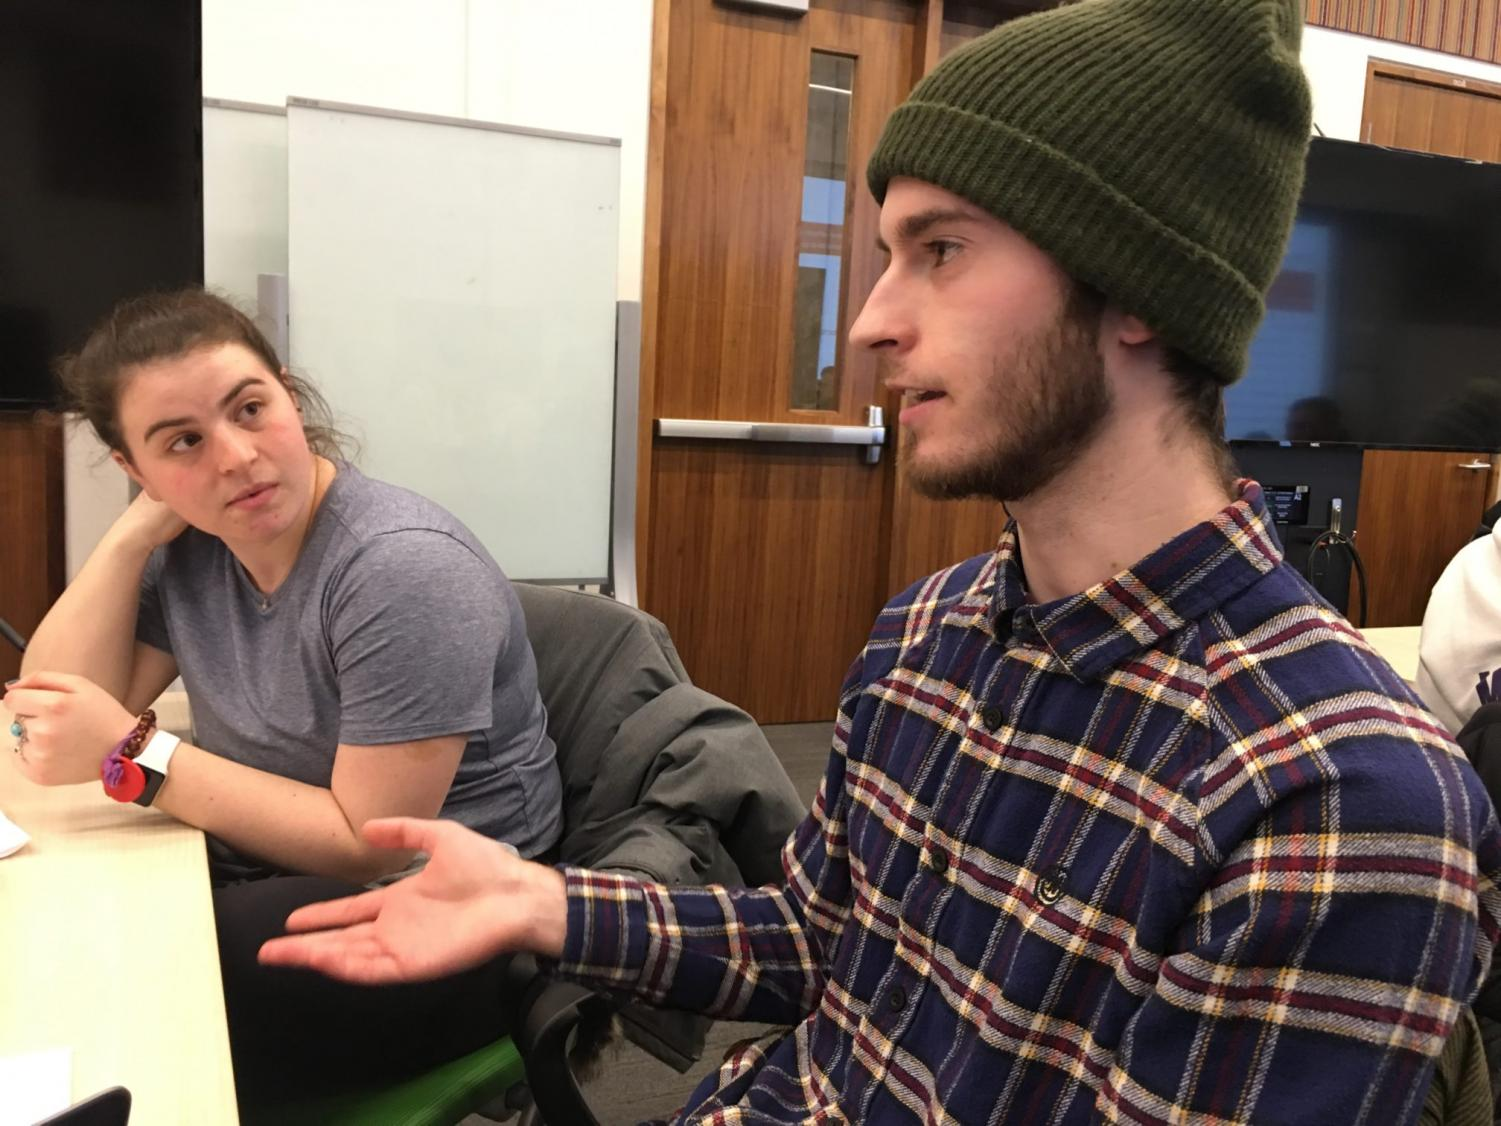 Julia Pascale, a sophomore from Baltimore, and Kyle Herbstreit, a junior from Stevensville, Michigan, discuss the death penalty during a session sponsored by WeListen, a bipartisan student group at the University of Michigan.